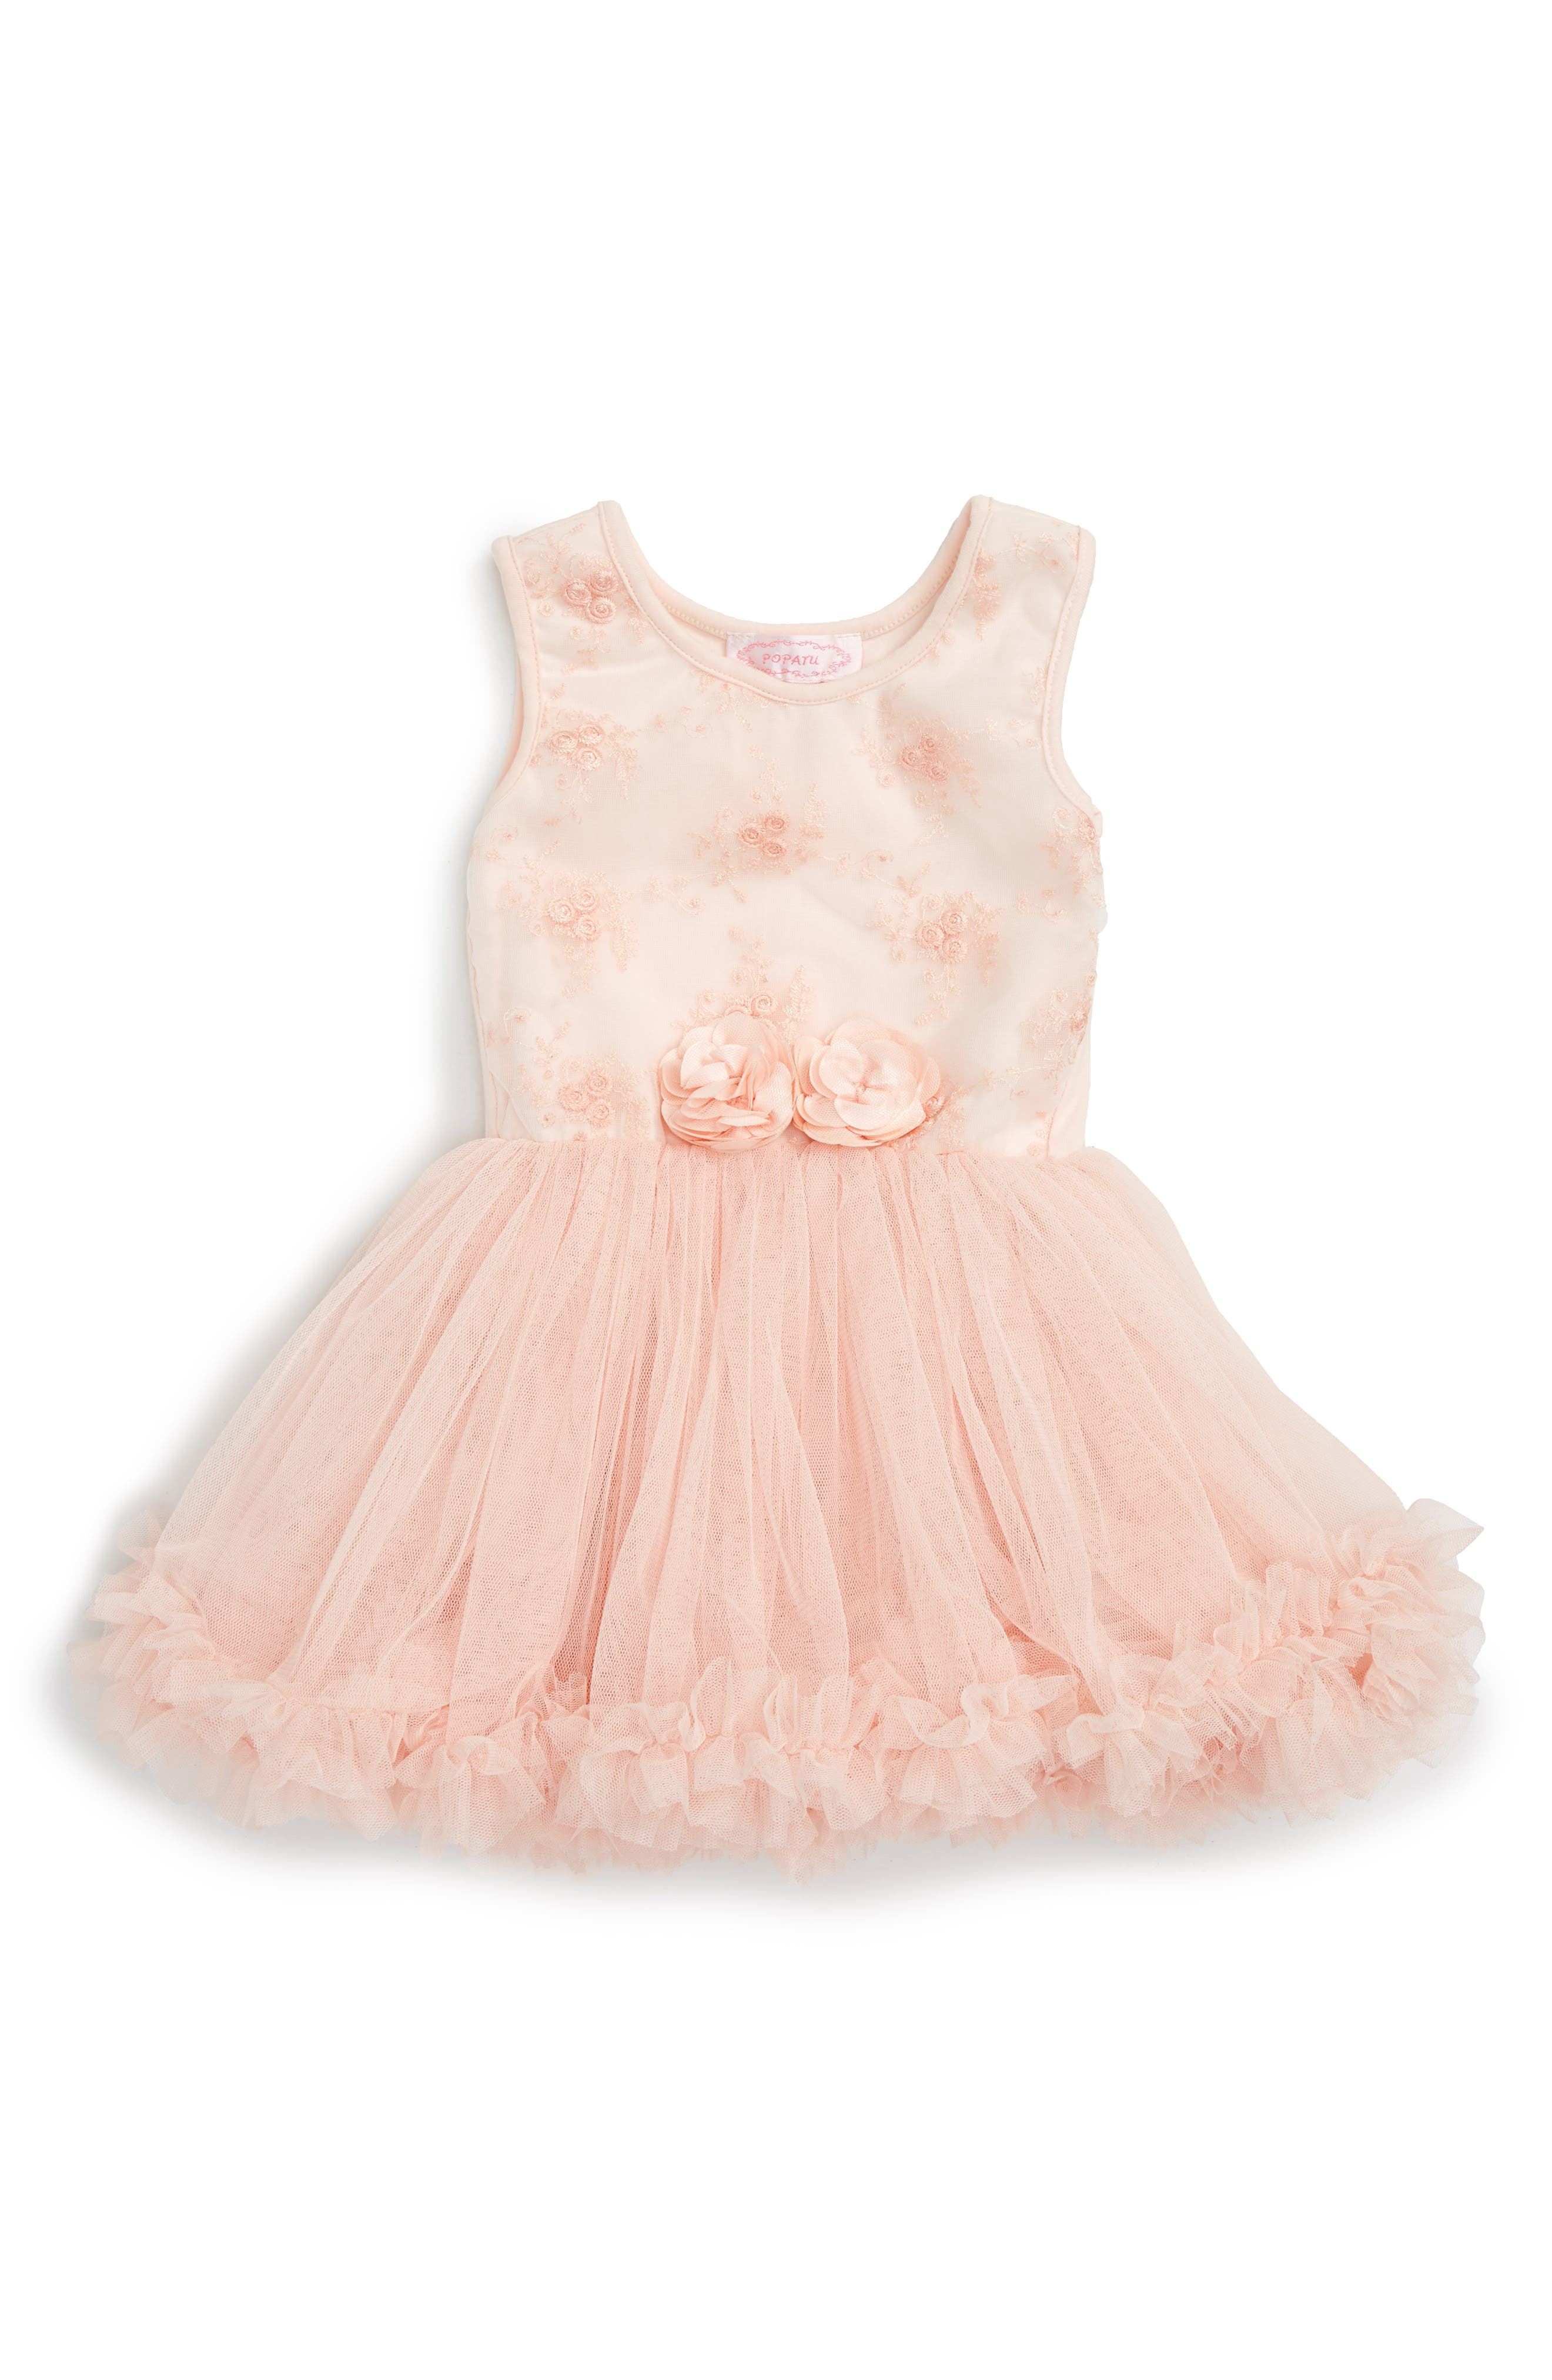 POPATU, Tulle Dress, Main thumbnail 1, color, PEACH